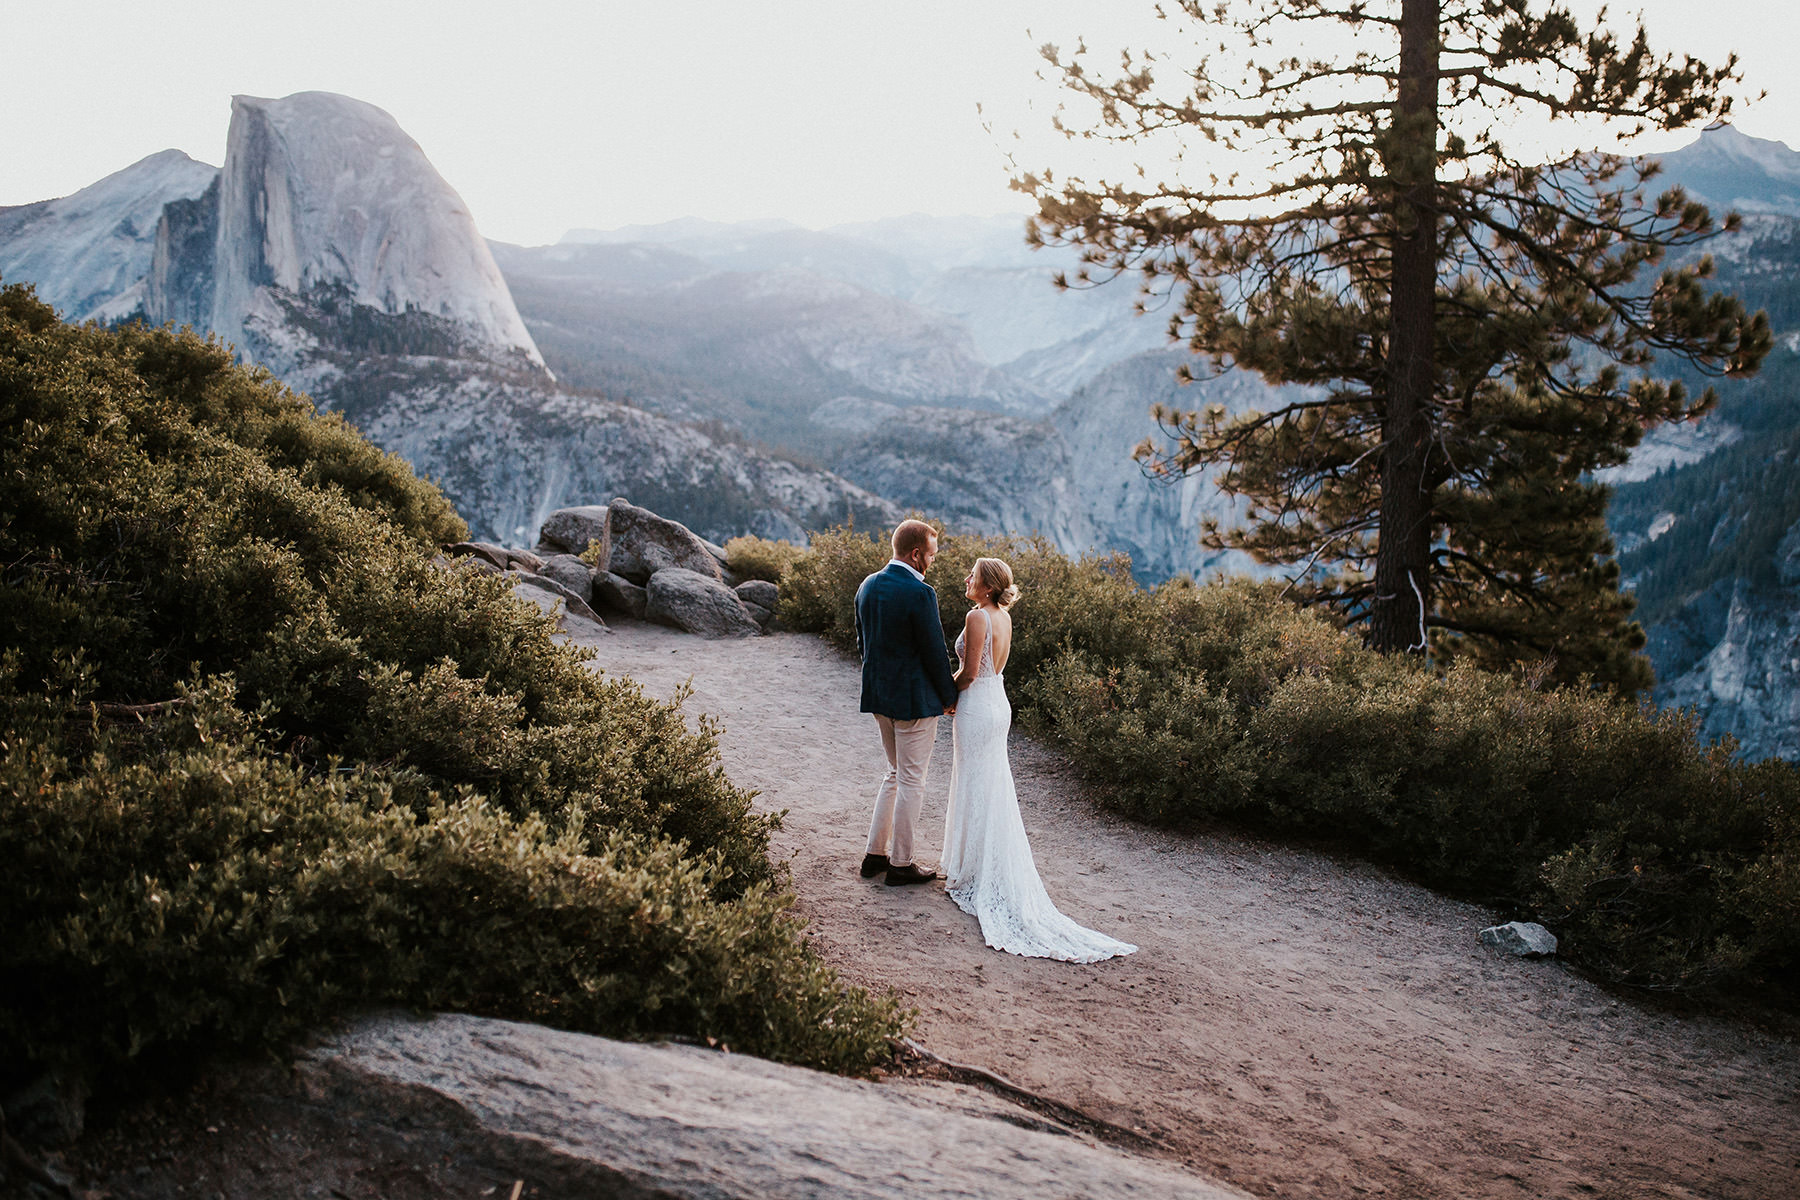 A wedding couple is standing at the Yosemite National Park.